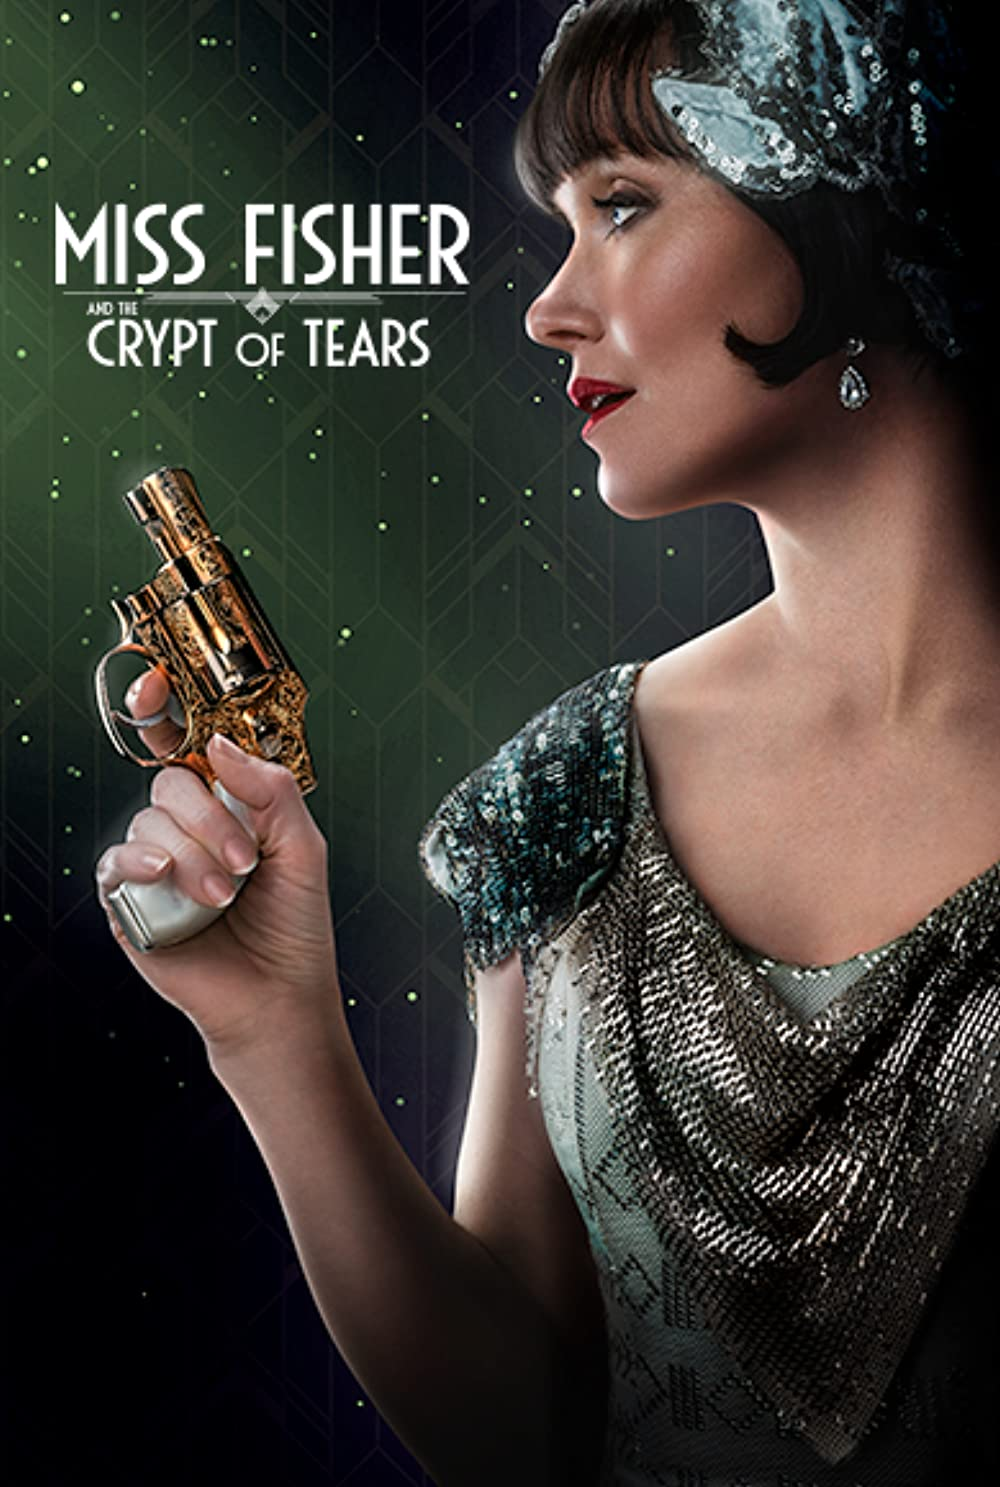 Miss Fisher & the Crypt of Tears (2020) Tamil Dubbed (Voice Over) & English [Dual Audio] WebRip 720p [1XBET]